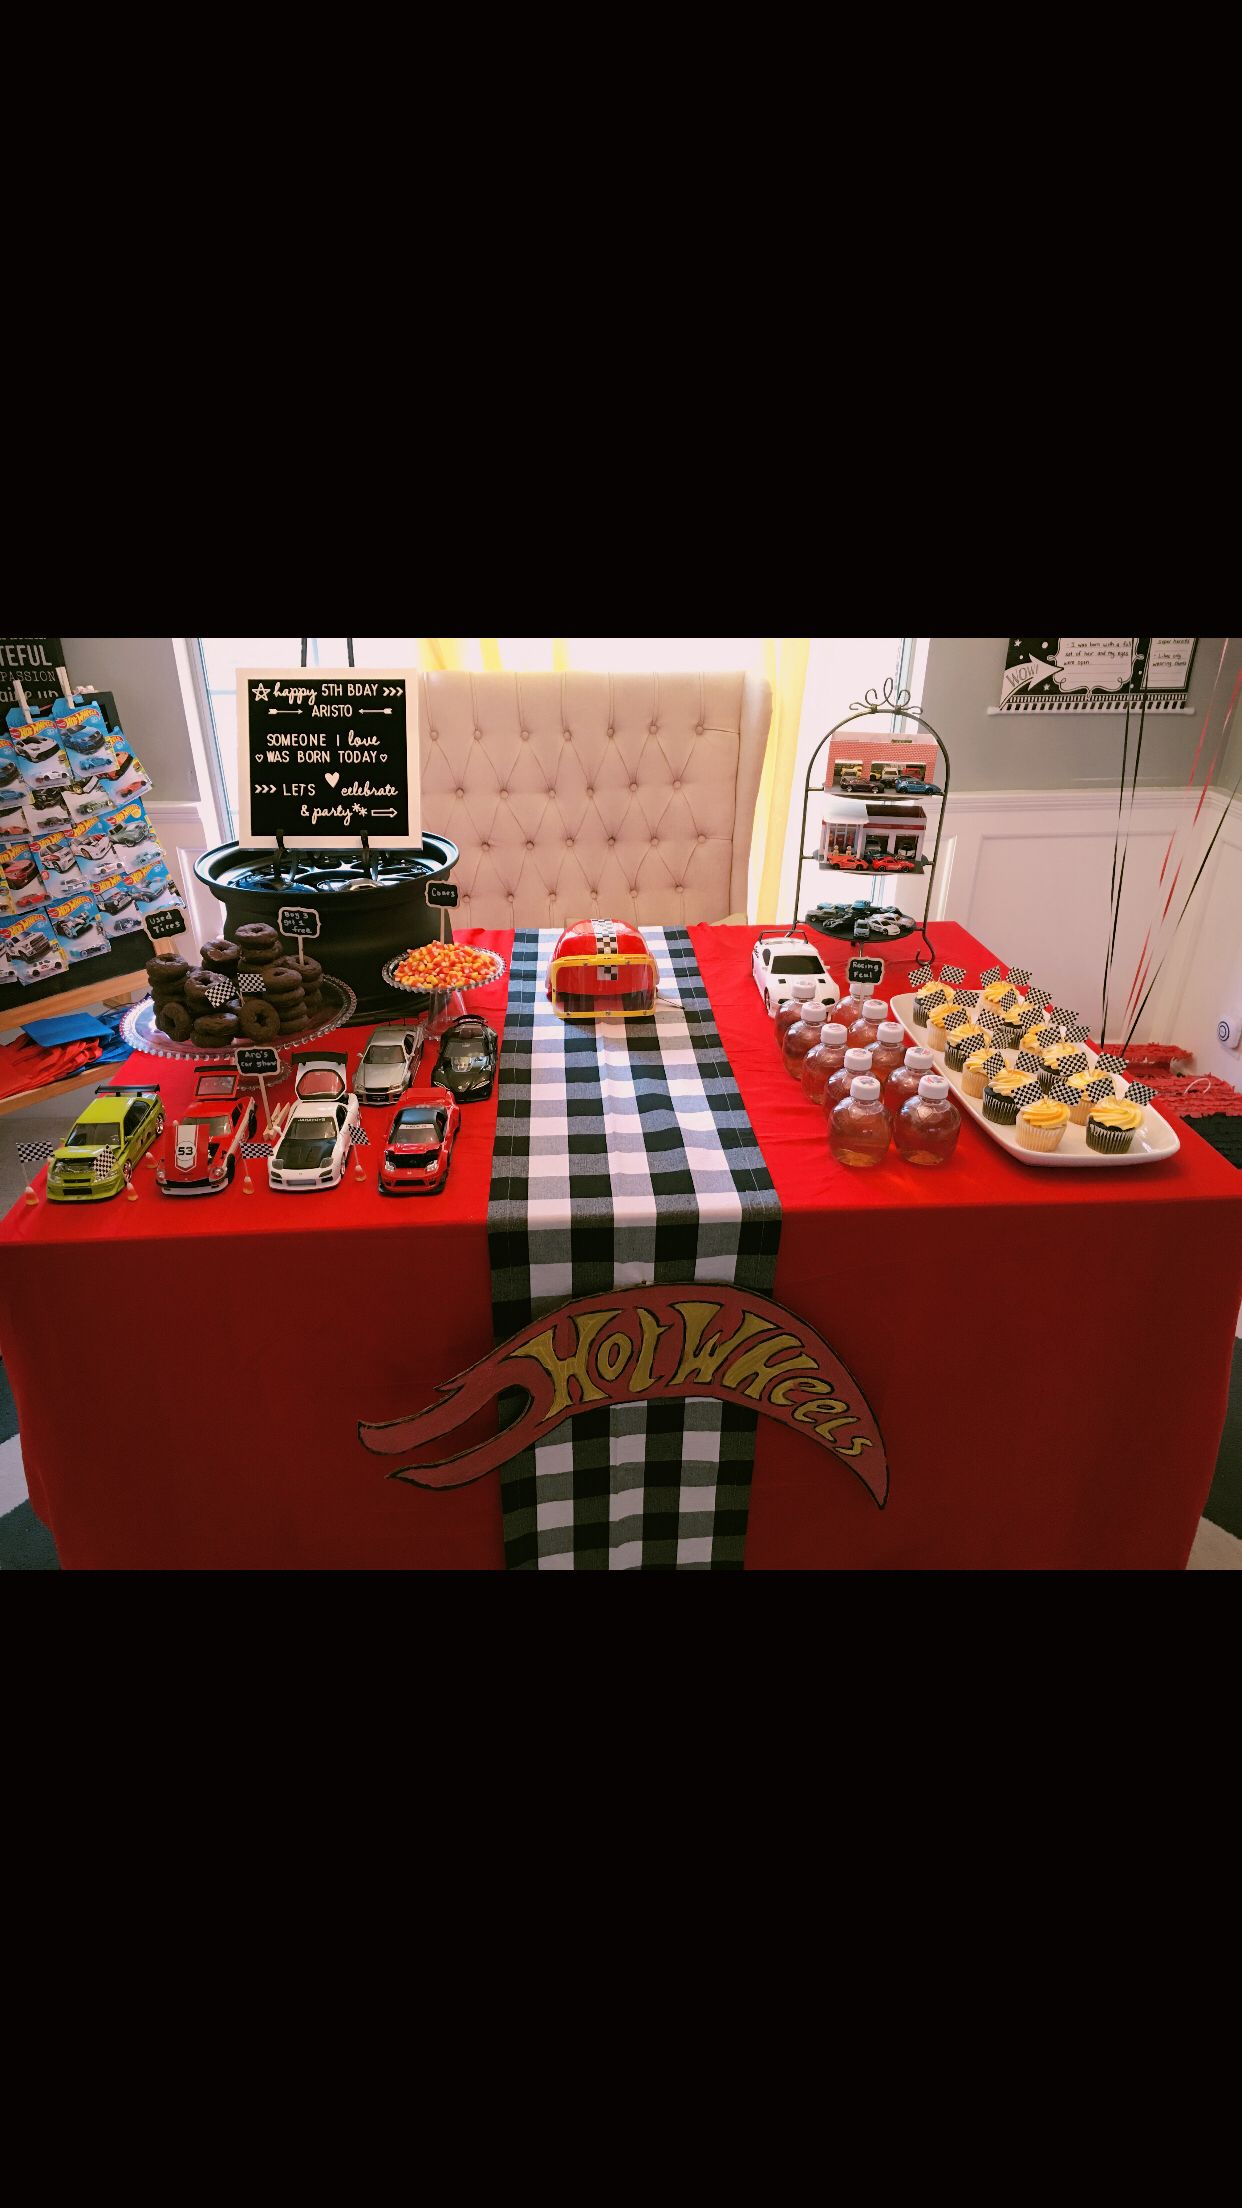 cars hot wheels birthday decor cake table birthdays events in rh pinterest com